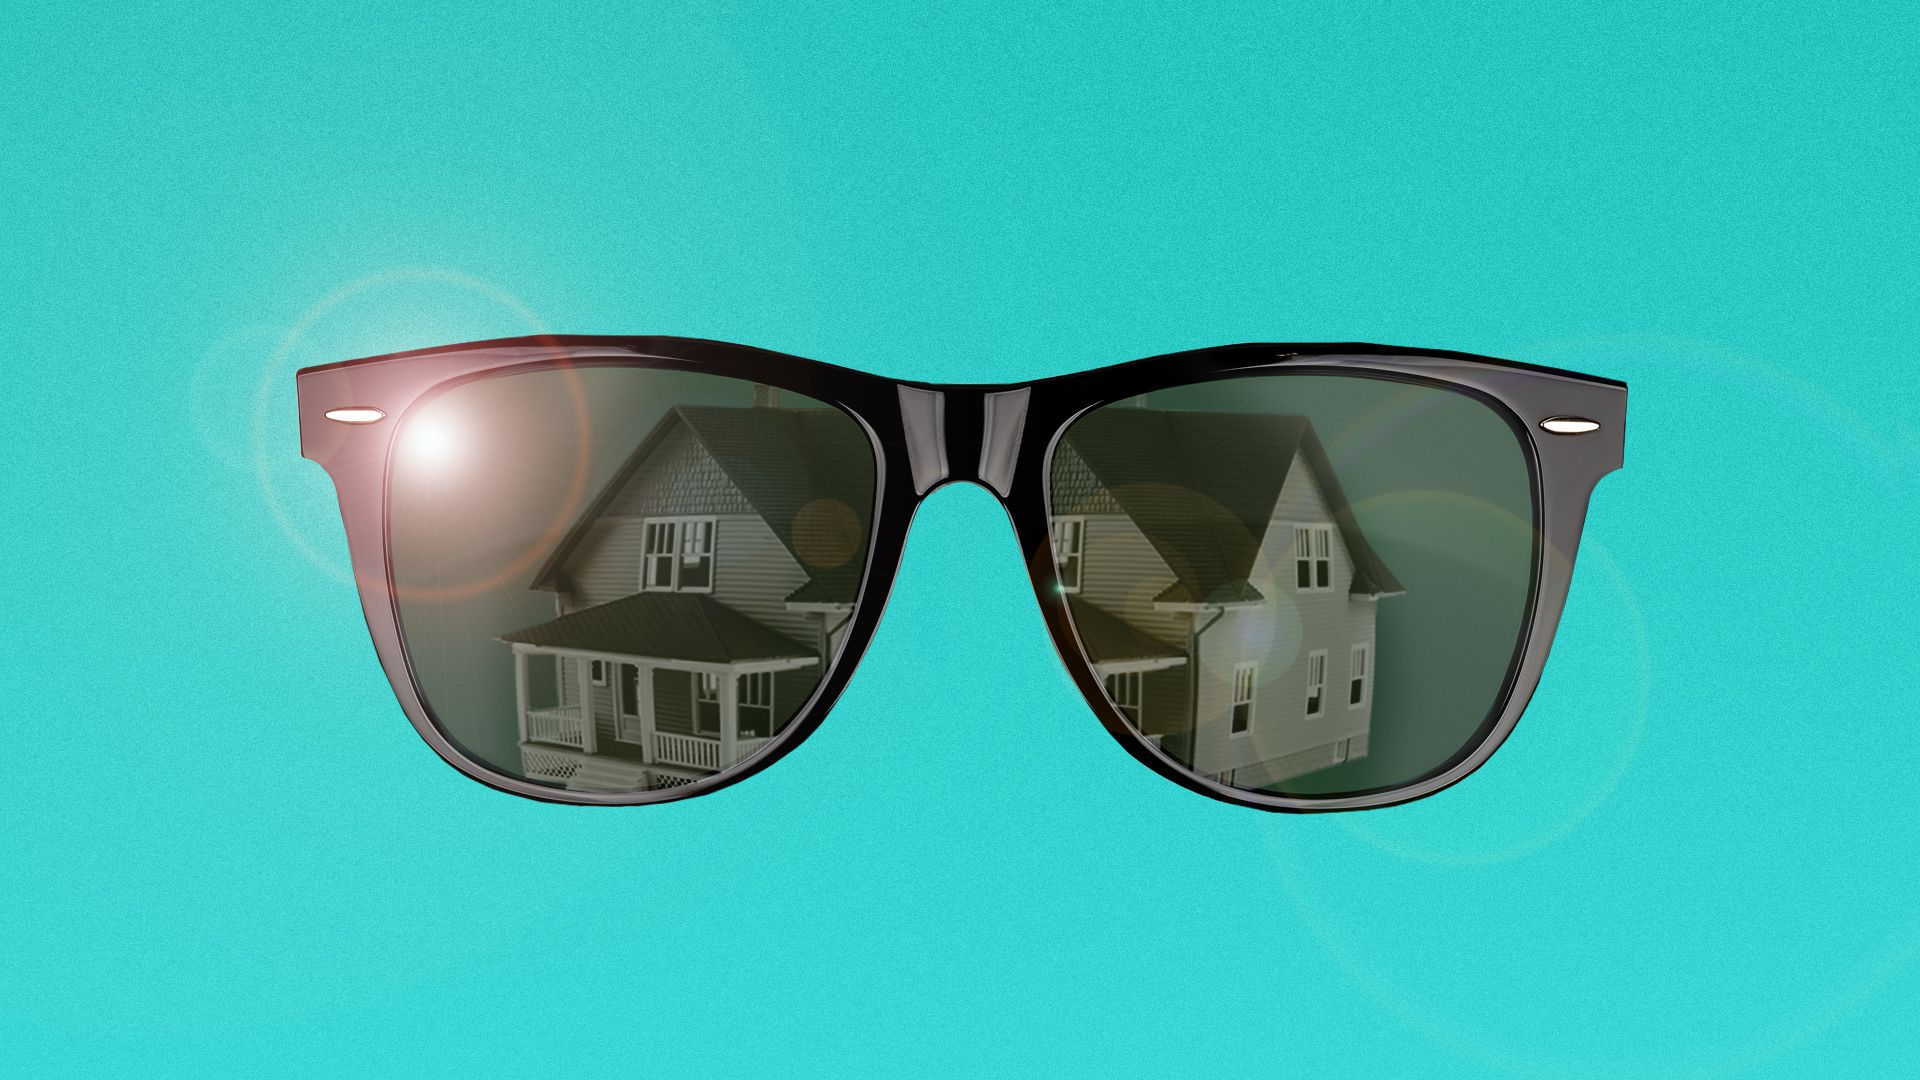 Illustration of a pair of sunglasses with a house reflecting in the lenses